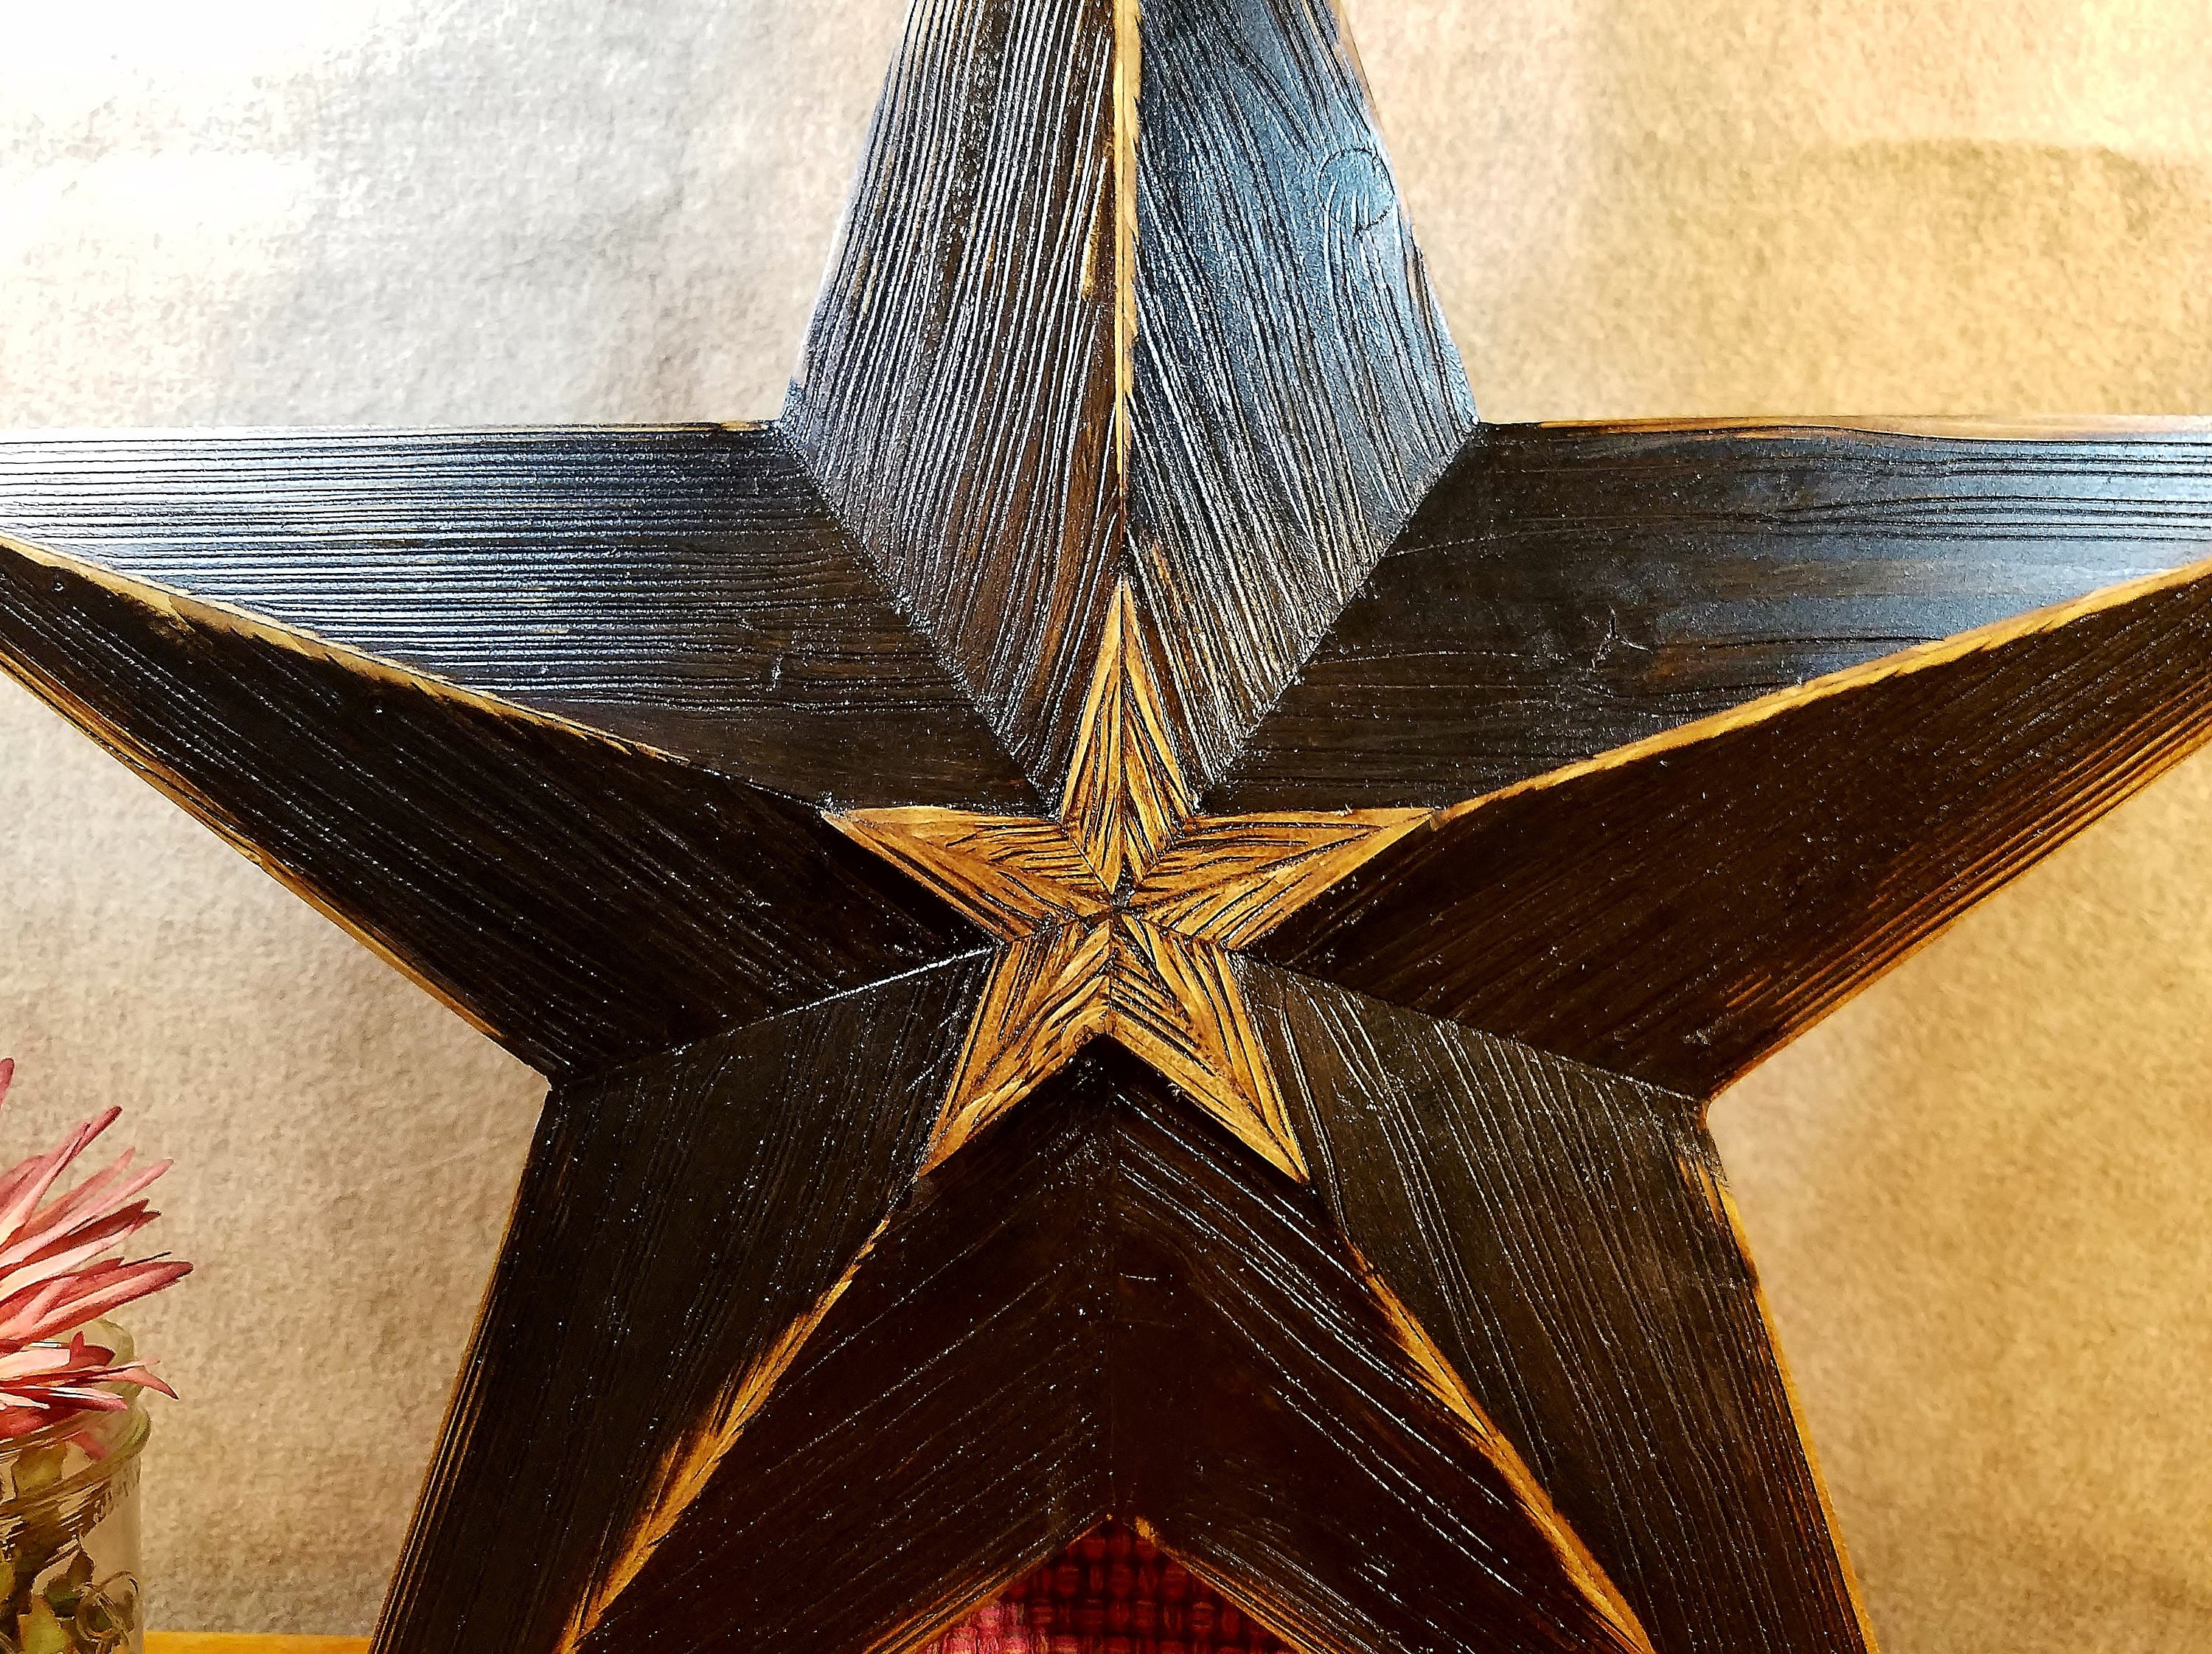 Widely Used Rustic Wood Star Barn Star Large Wooden Star Black Rustic (View 4 of 20)